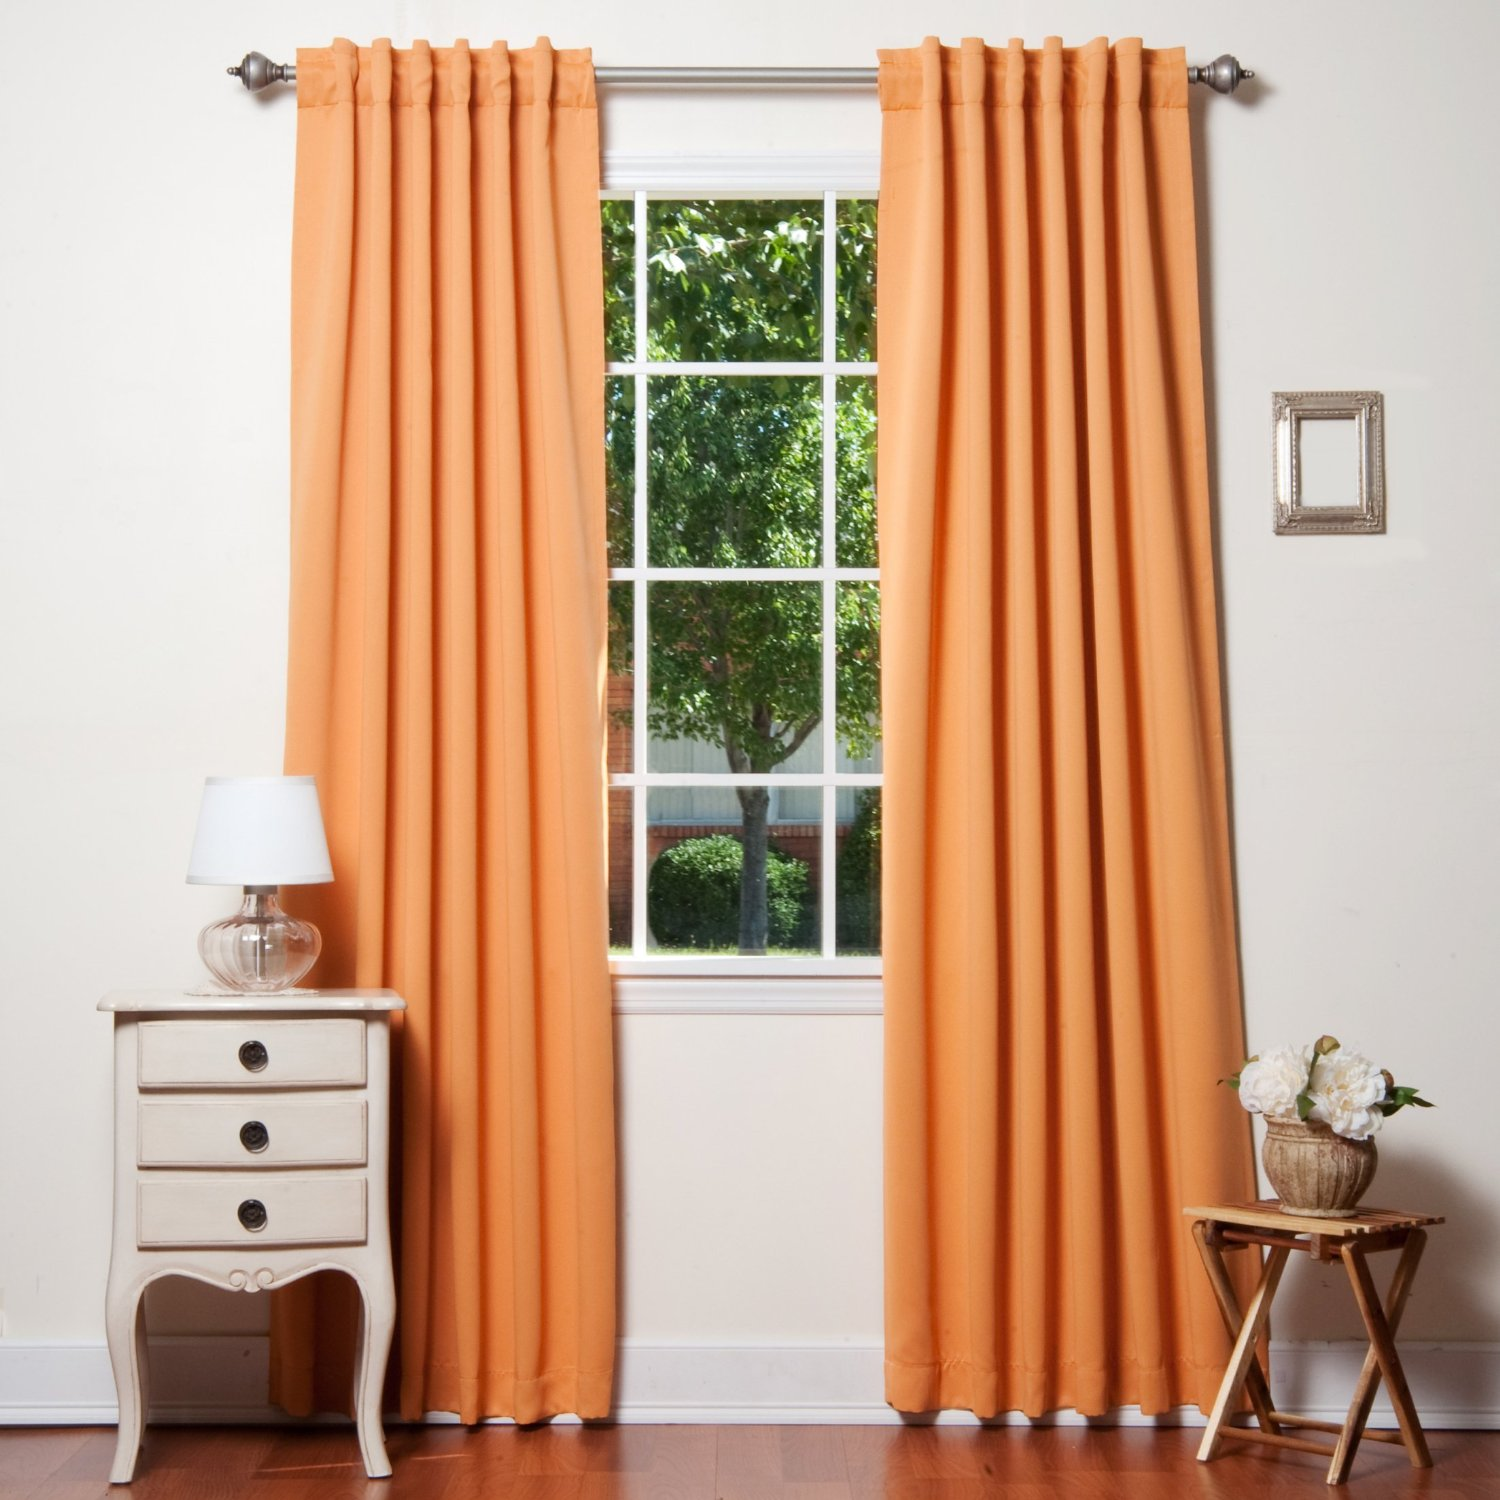 Fabric Roman Shades Target | Target Blinds | Soundproof Curtains Target